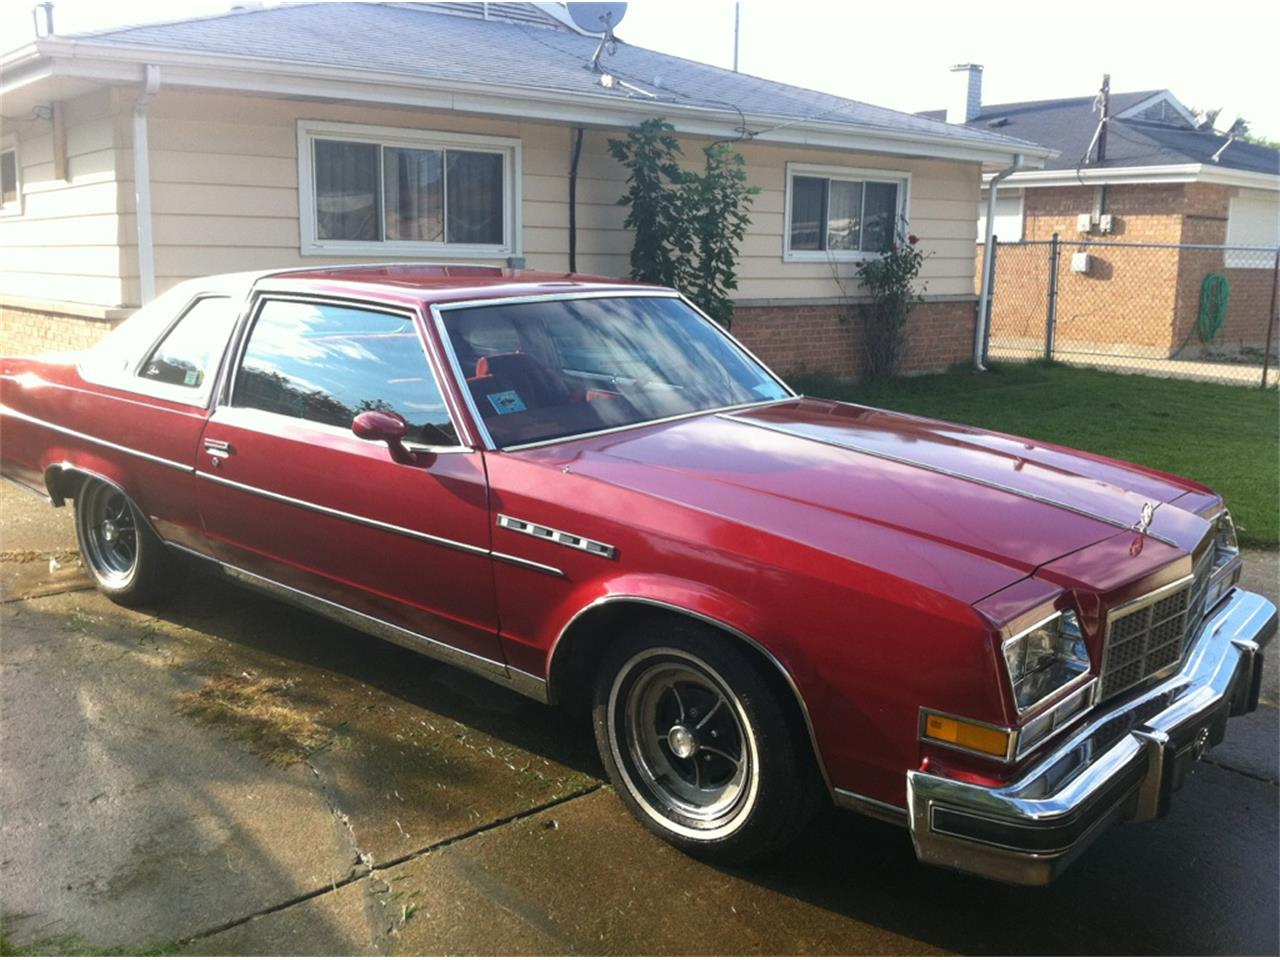 1977 Buick Electra 225 (CC-1104588) for sale in Burbank, Illinois